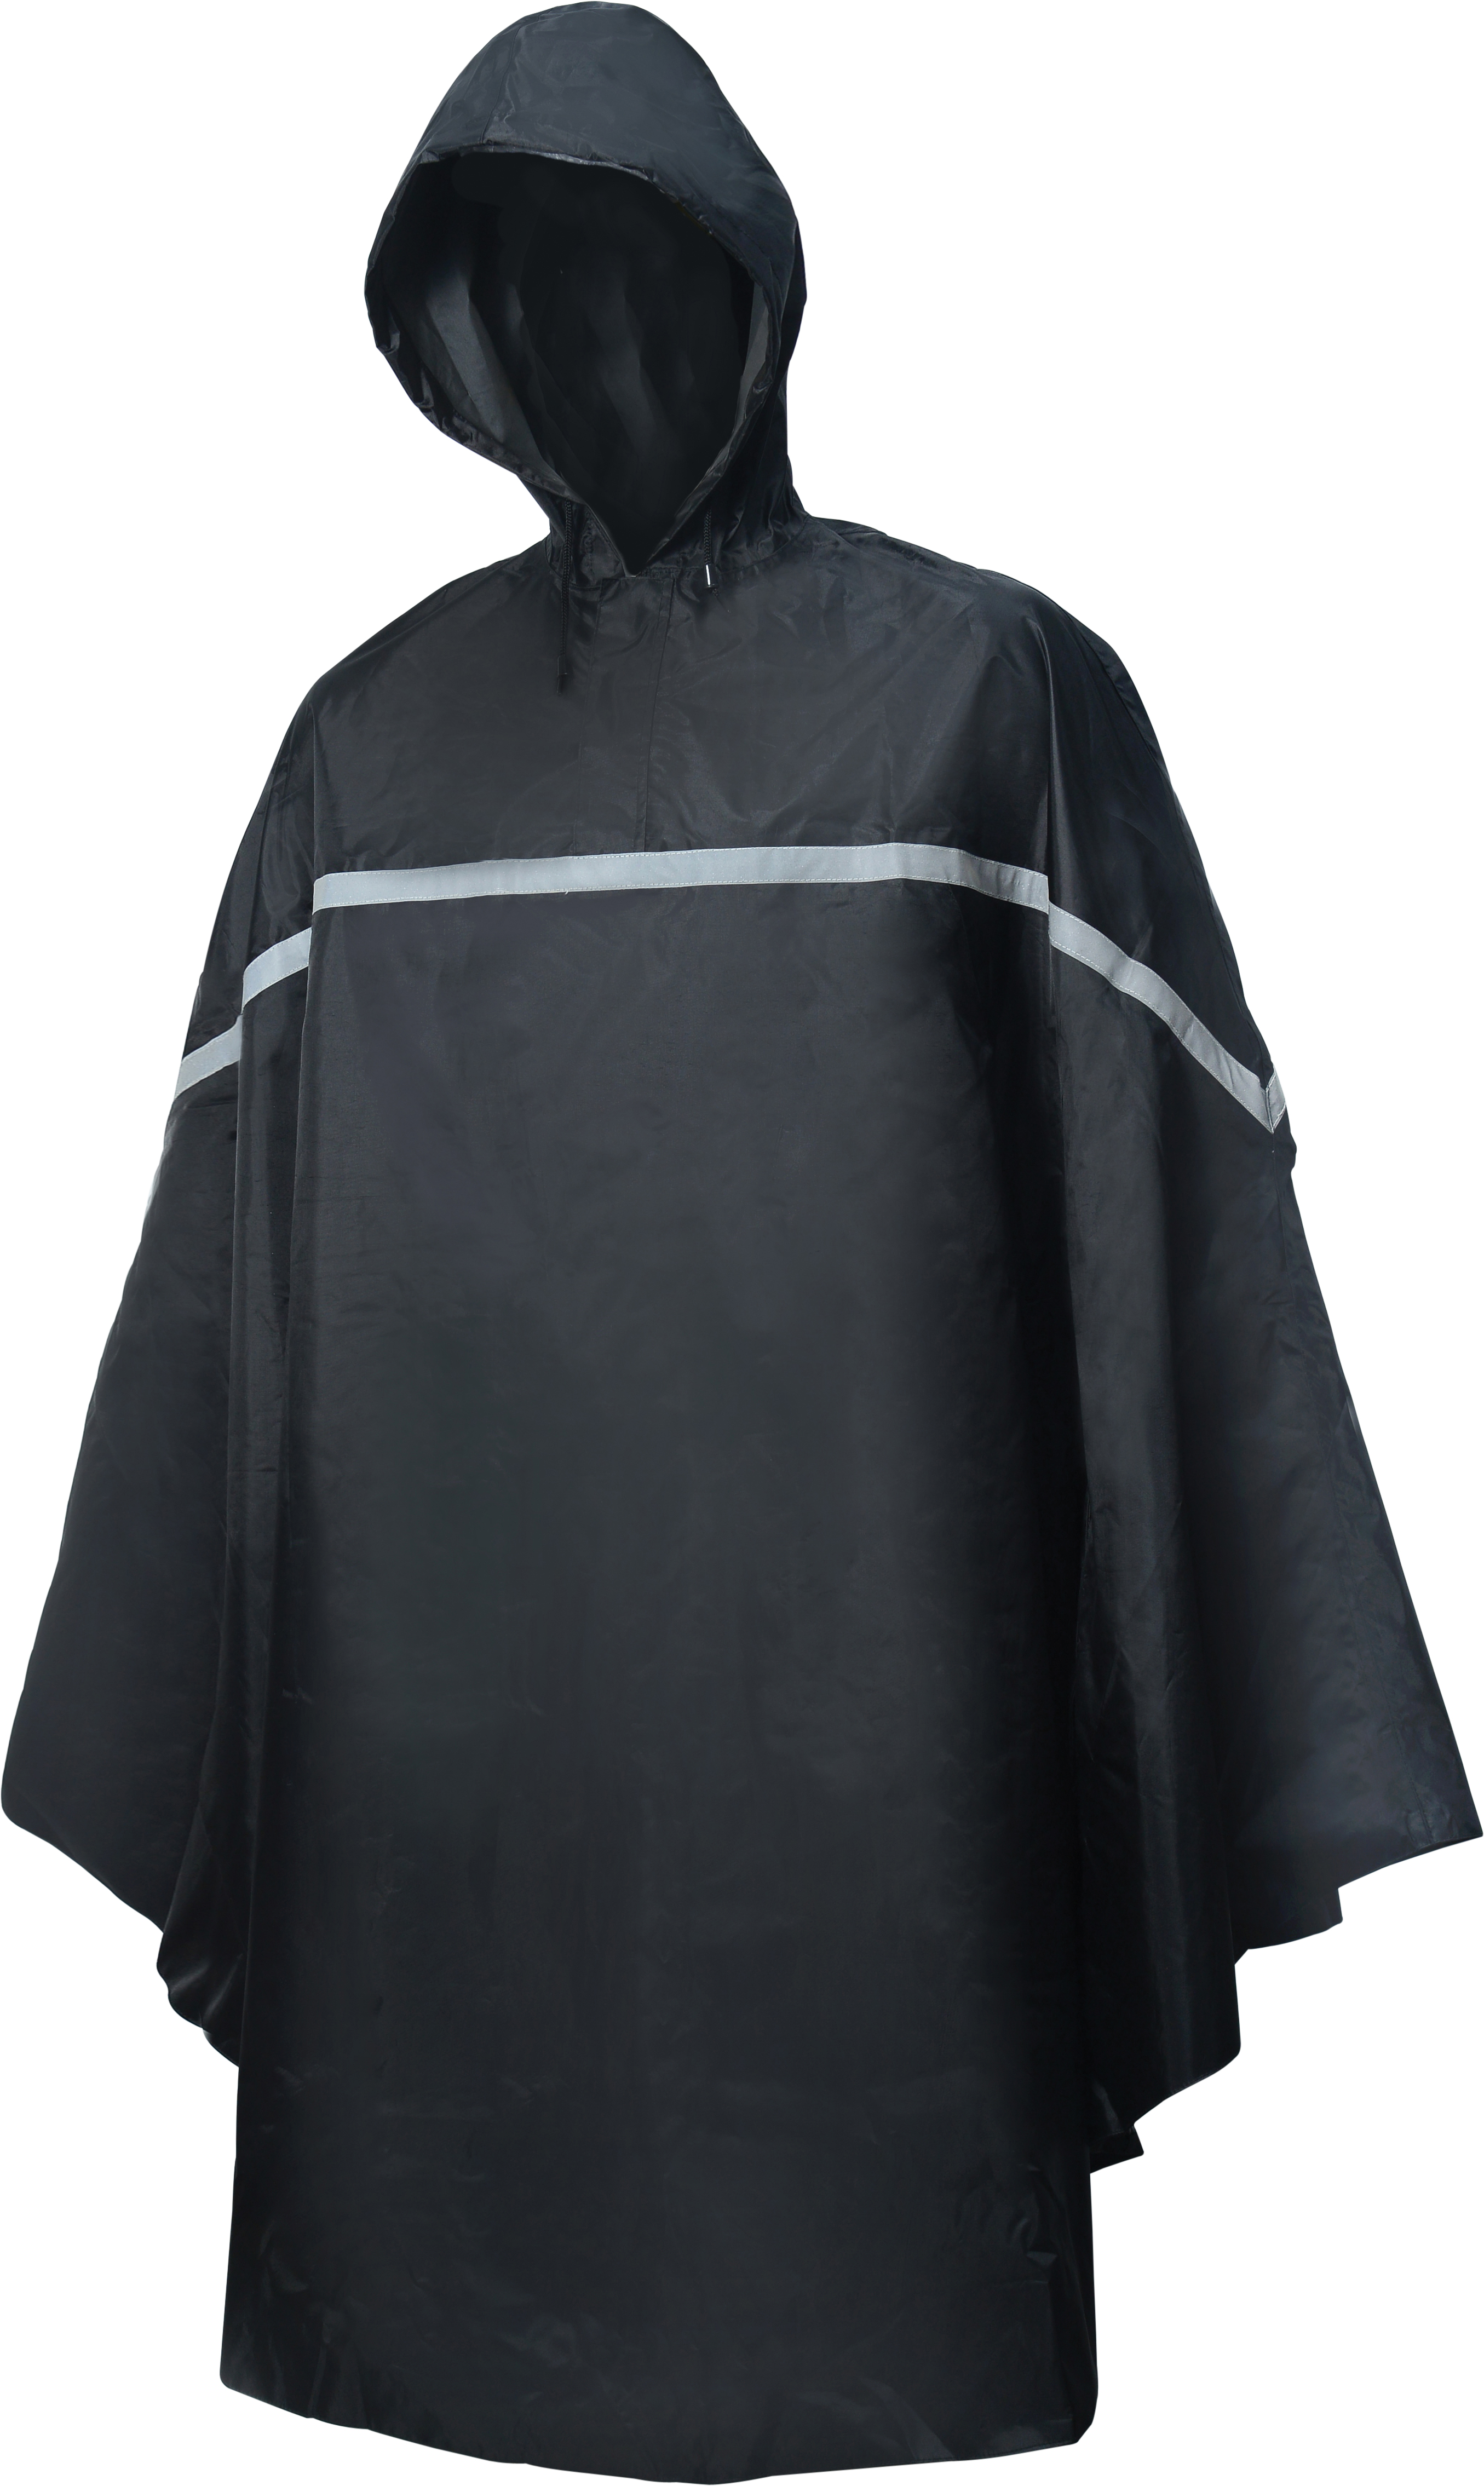 HBS Poncho Basic Noir - Taille S/M